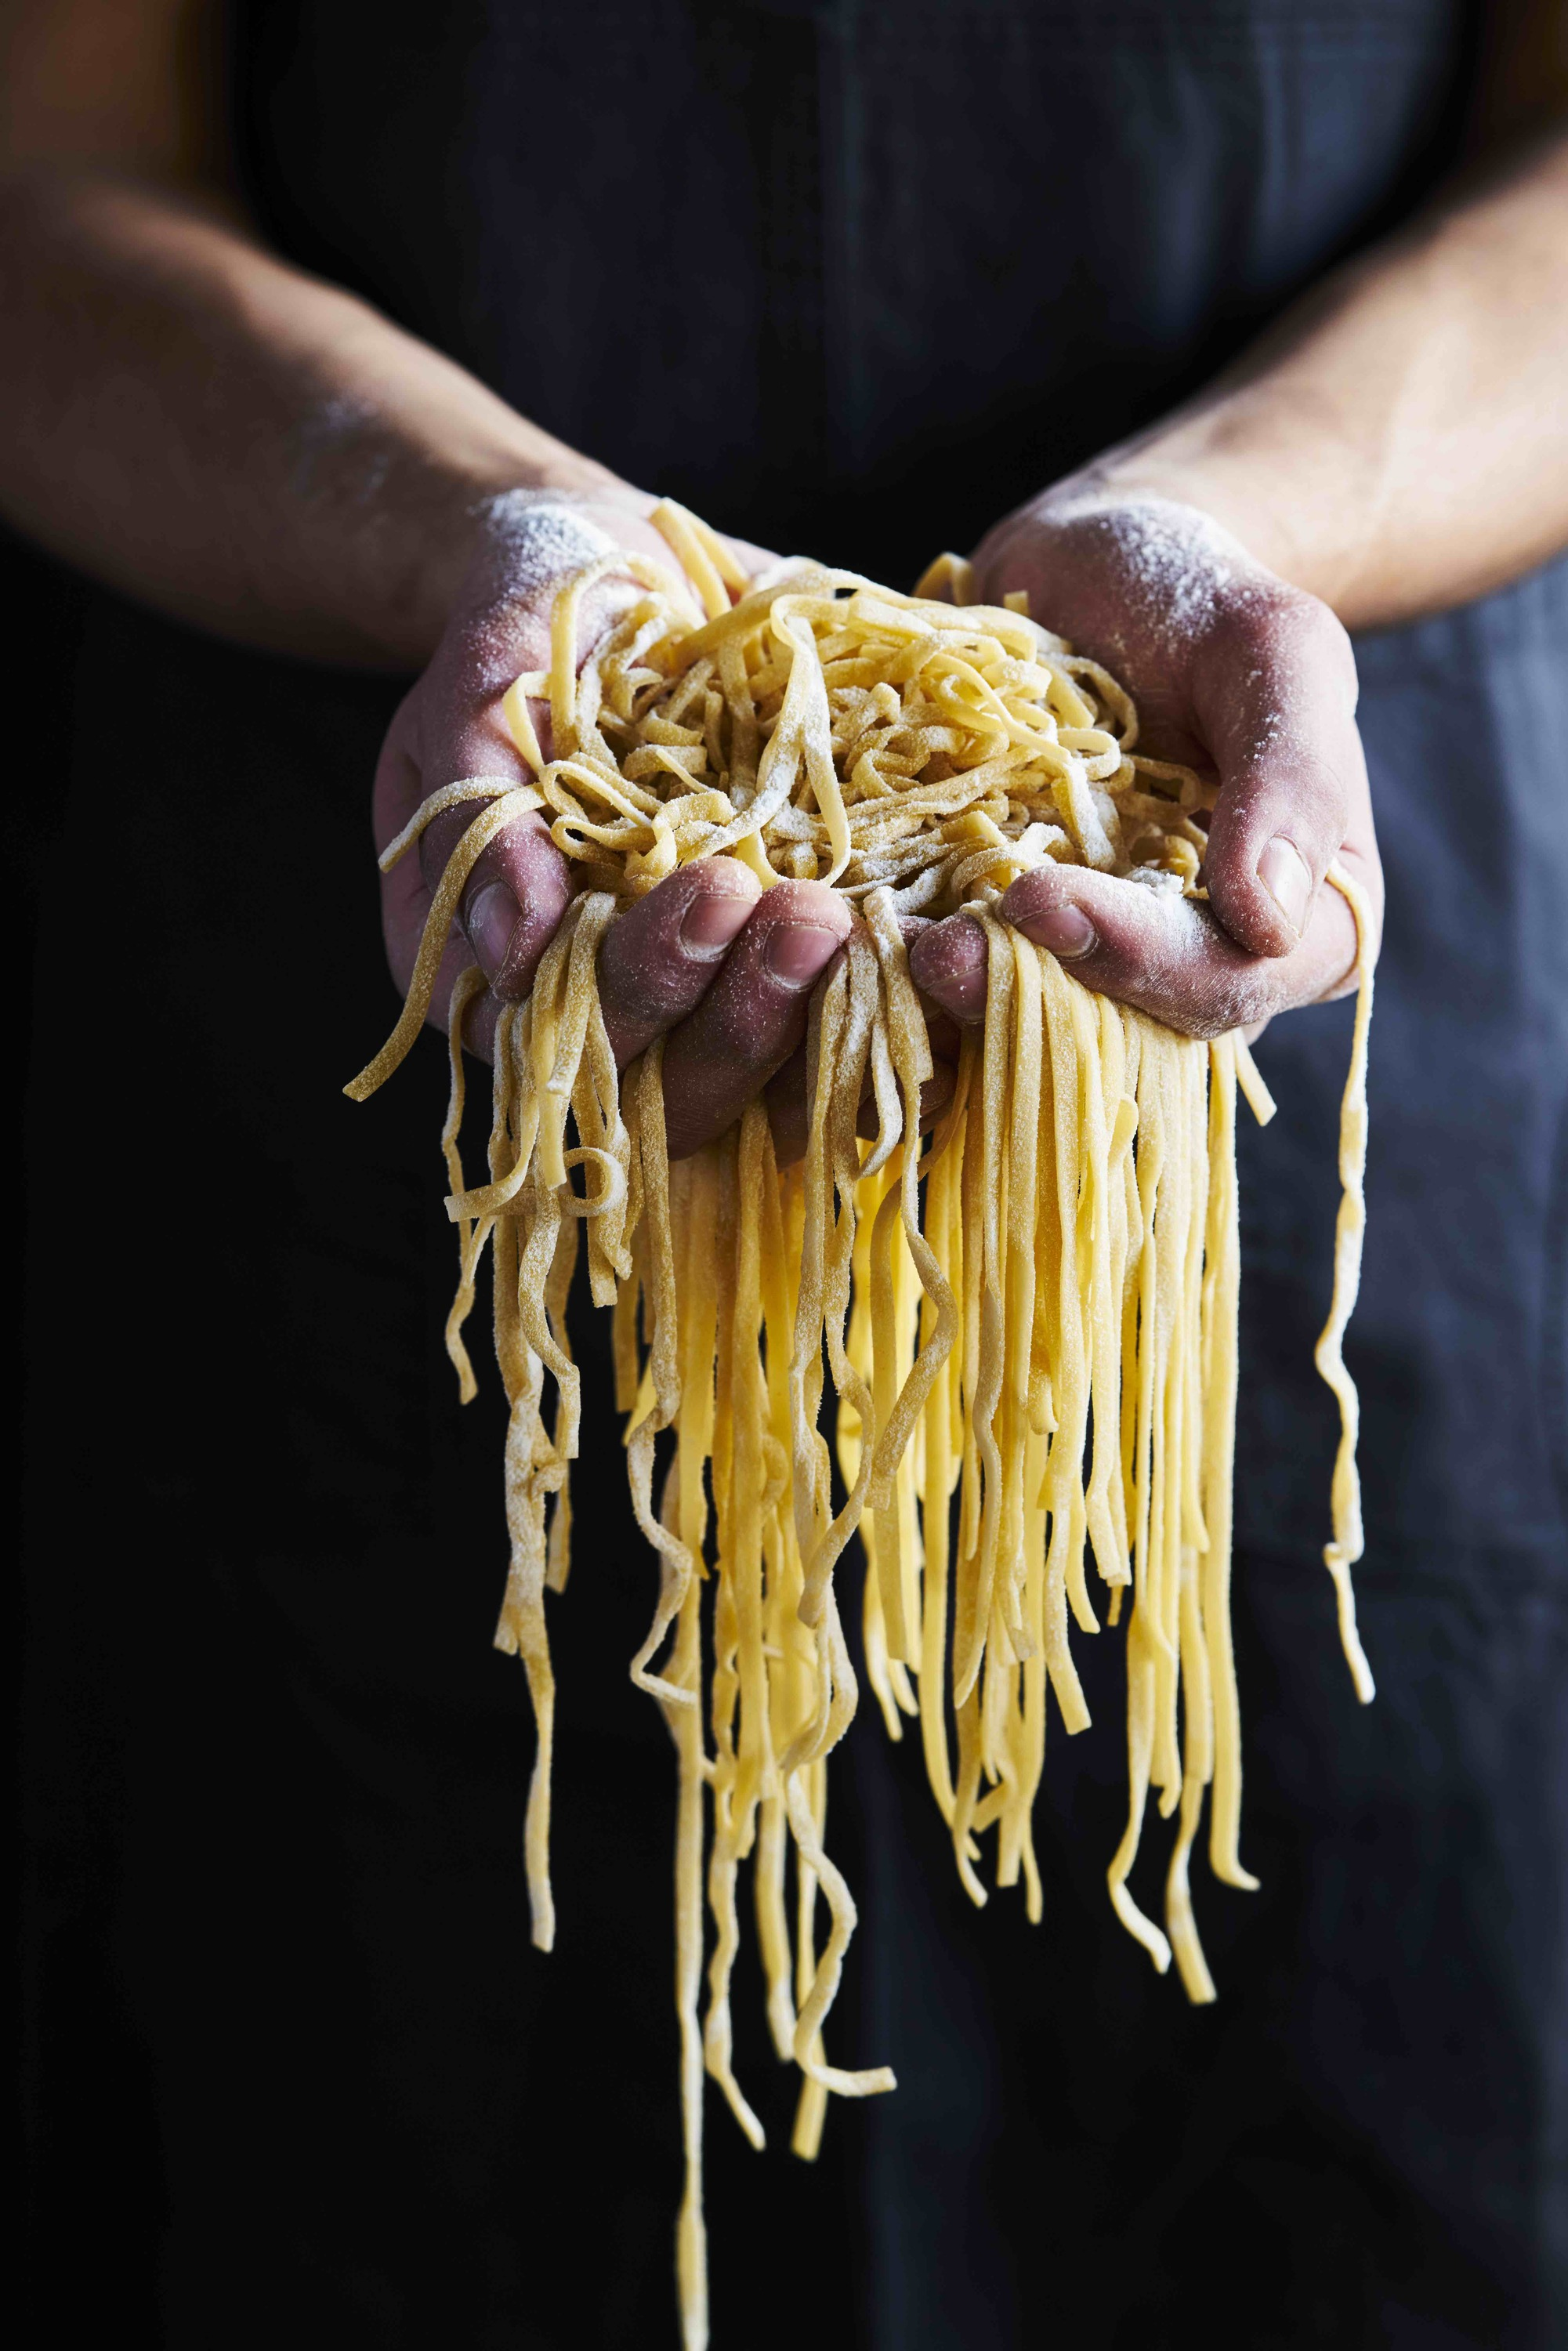 Hands holding fresh pasta